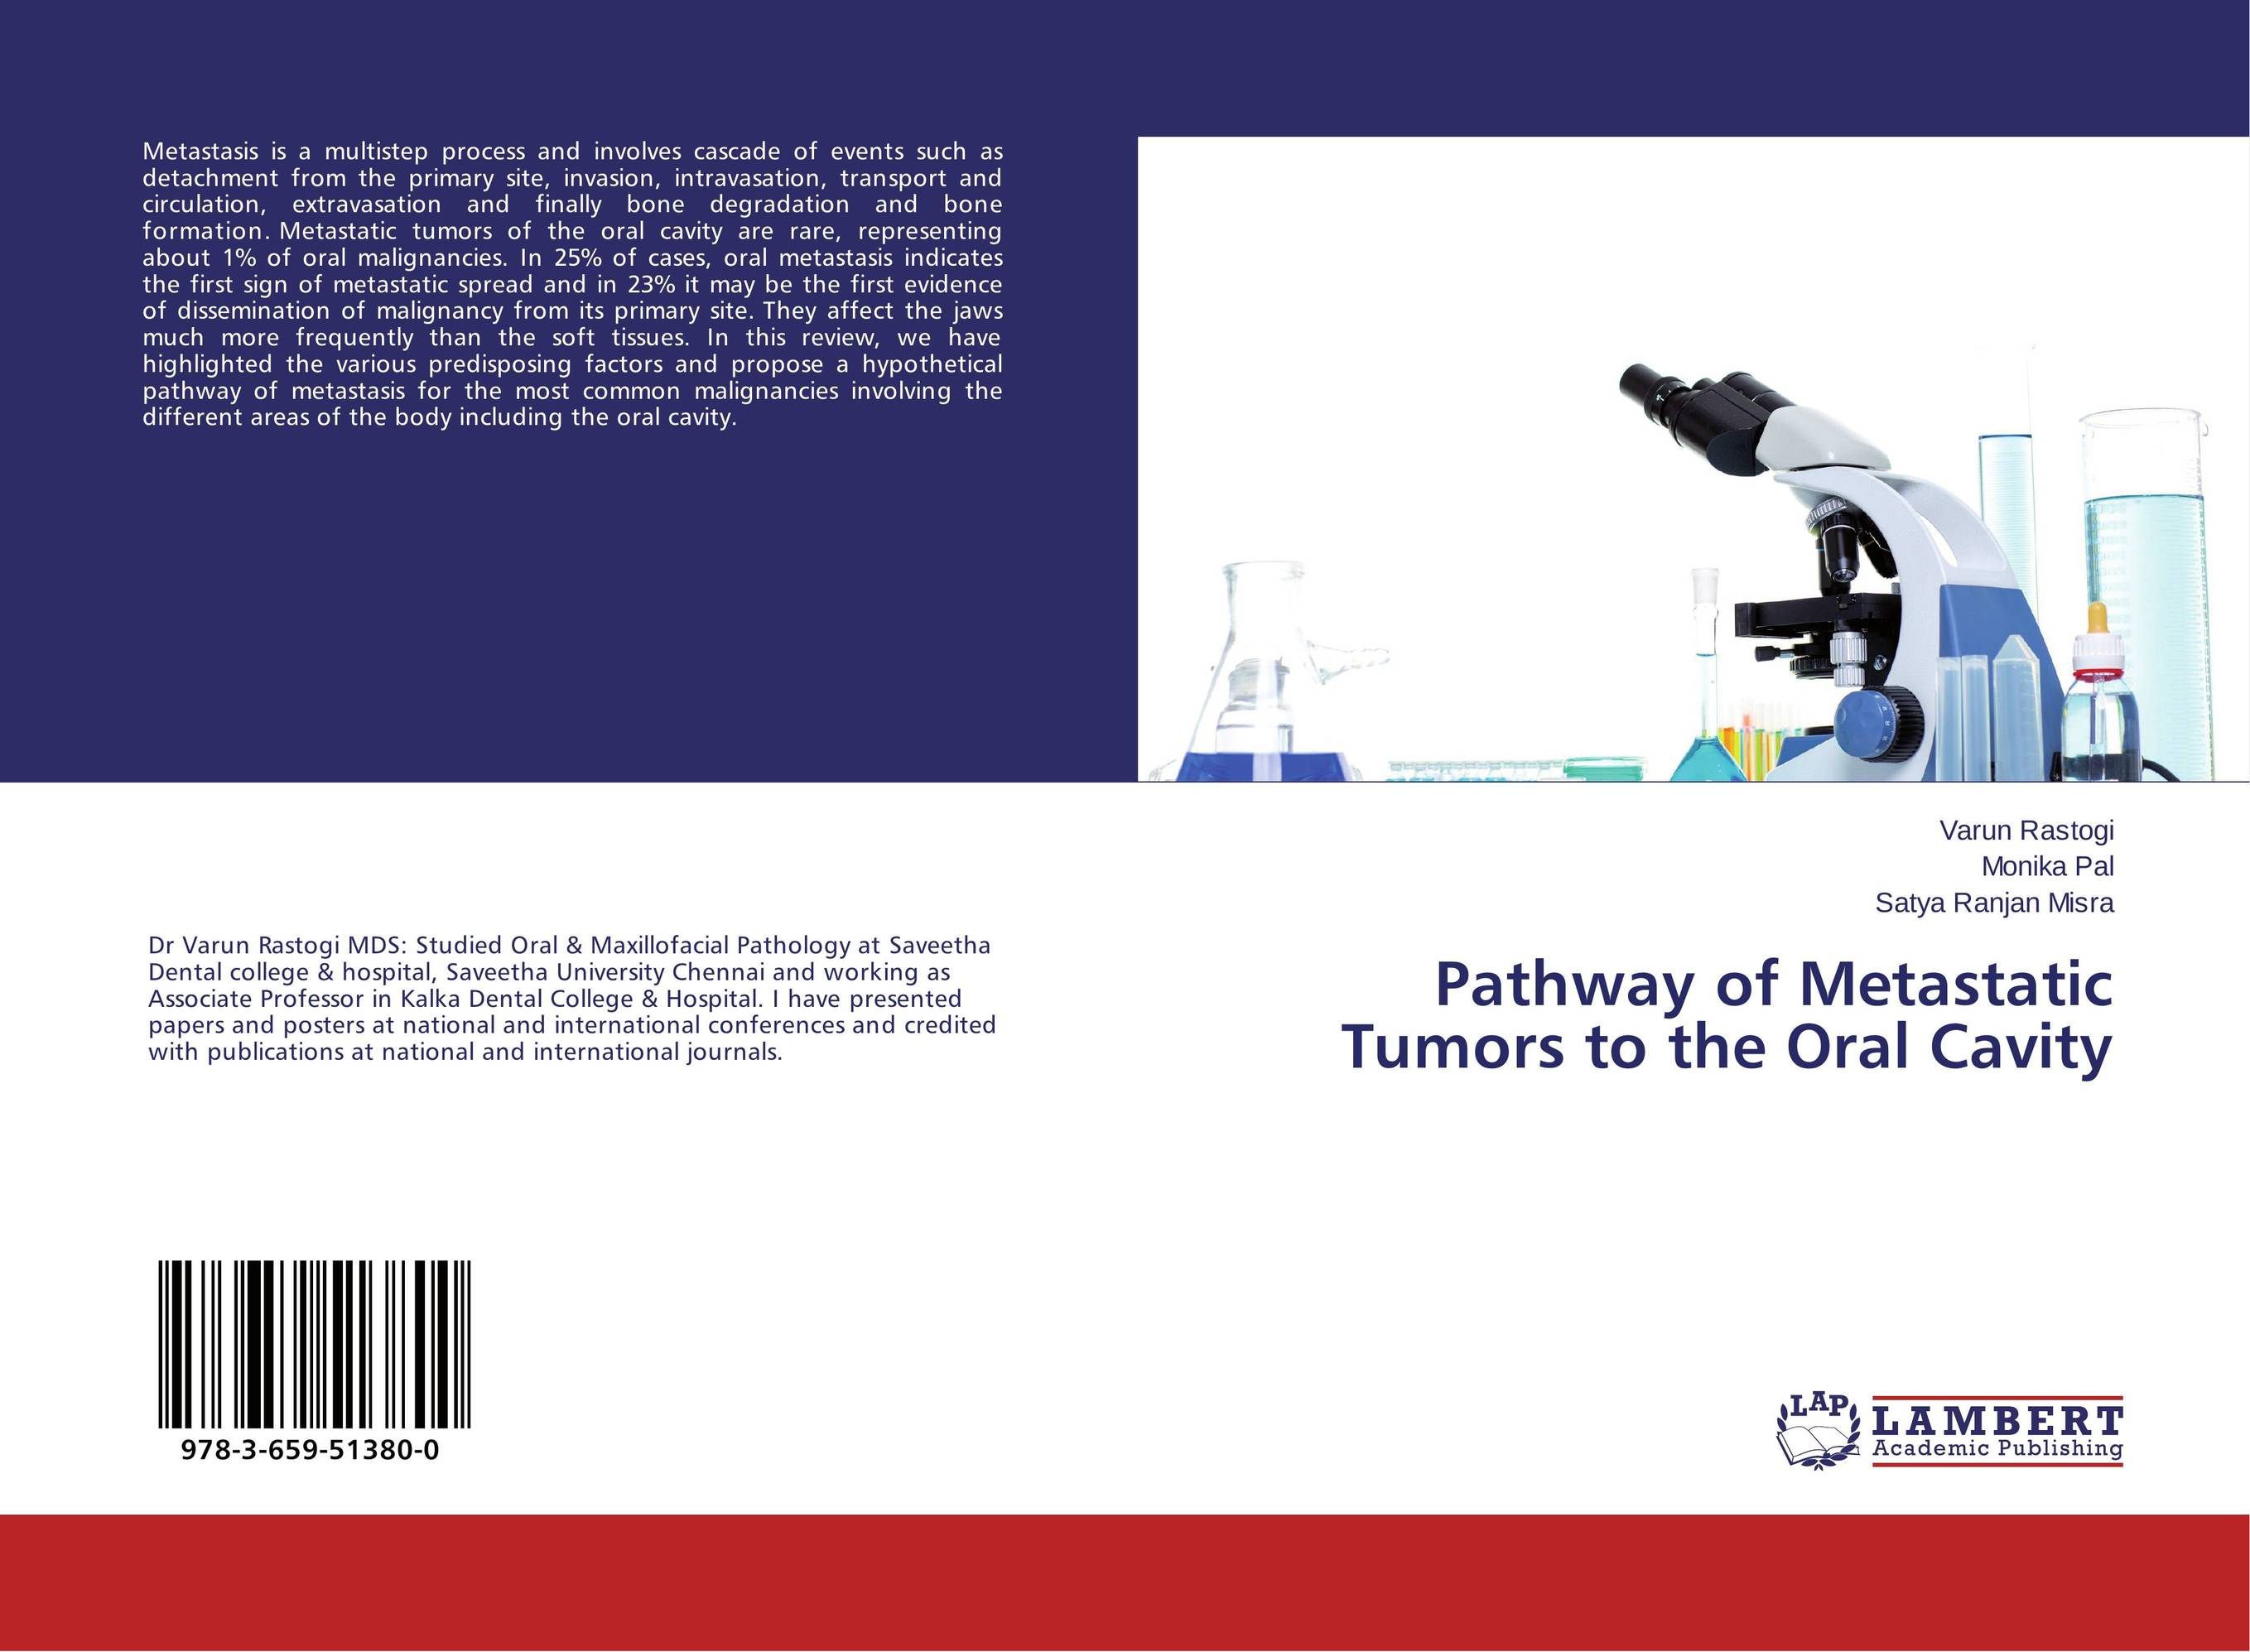 Pathway of Metastatic Tumors to the Oral Cavity